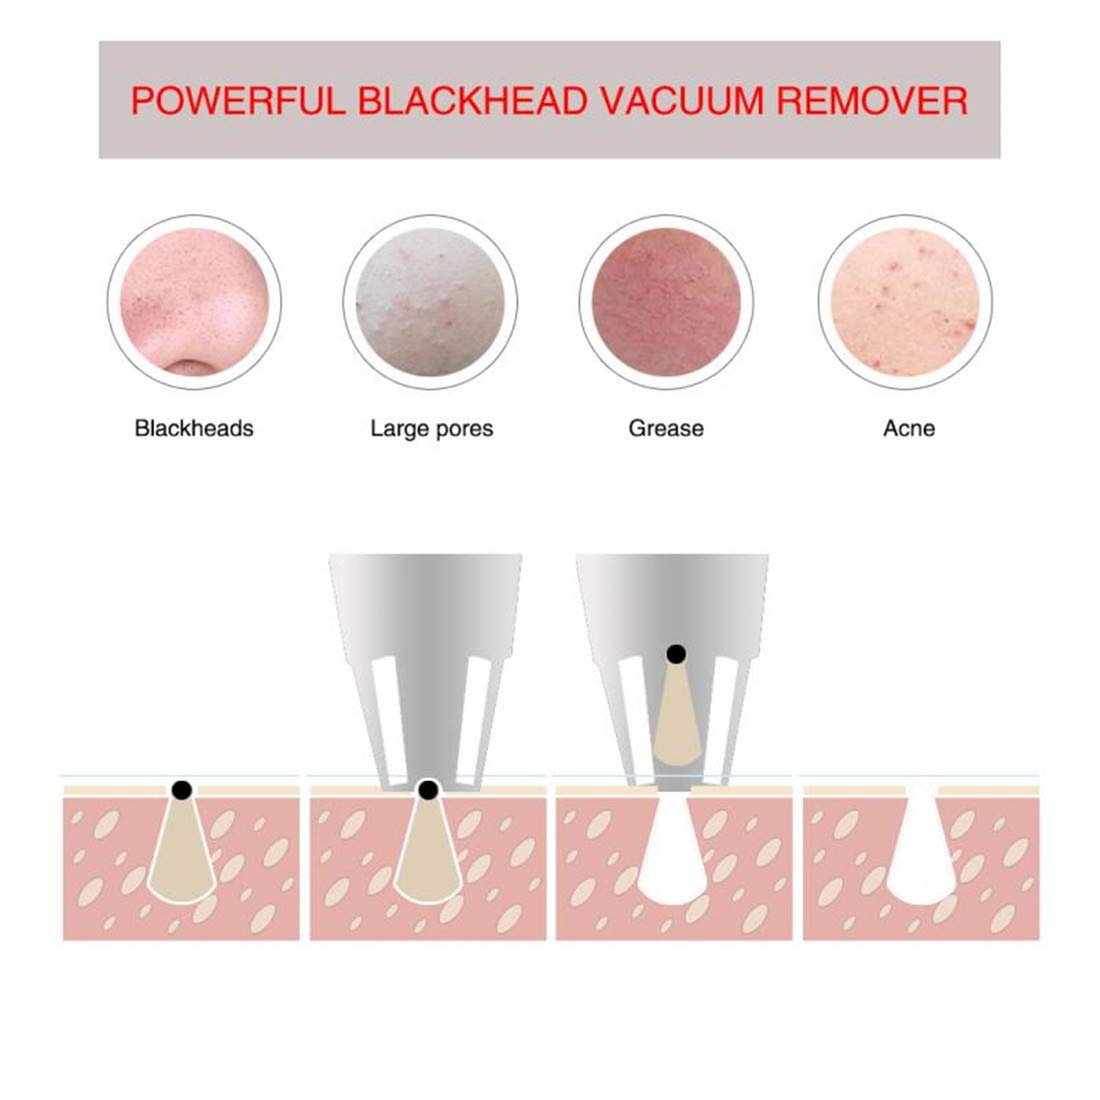 Blackhead Remover Vacuum, J'sBeauty Upgraded 8 in 1 Dual Mode USB Rechargeable Electric Blackhead Strong Vacuum Suction Removal Derma Skin Pore Cleaner Acne Comedone Pimple Extractor Tool Set (Style)